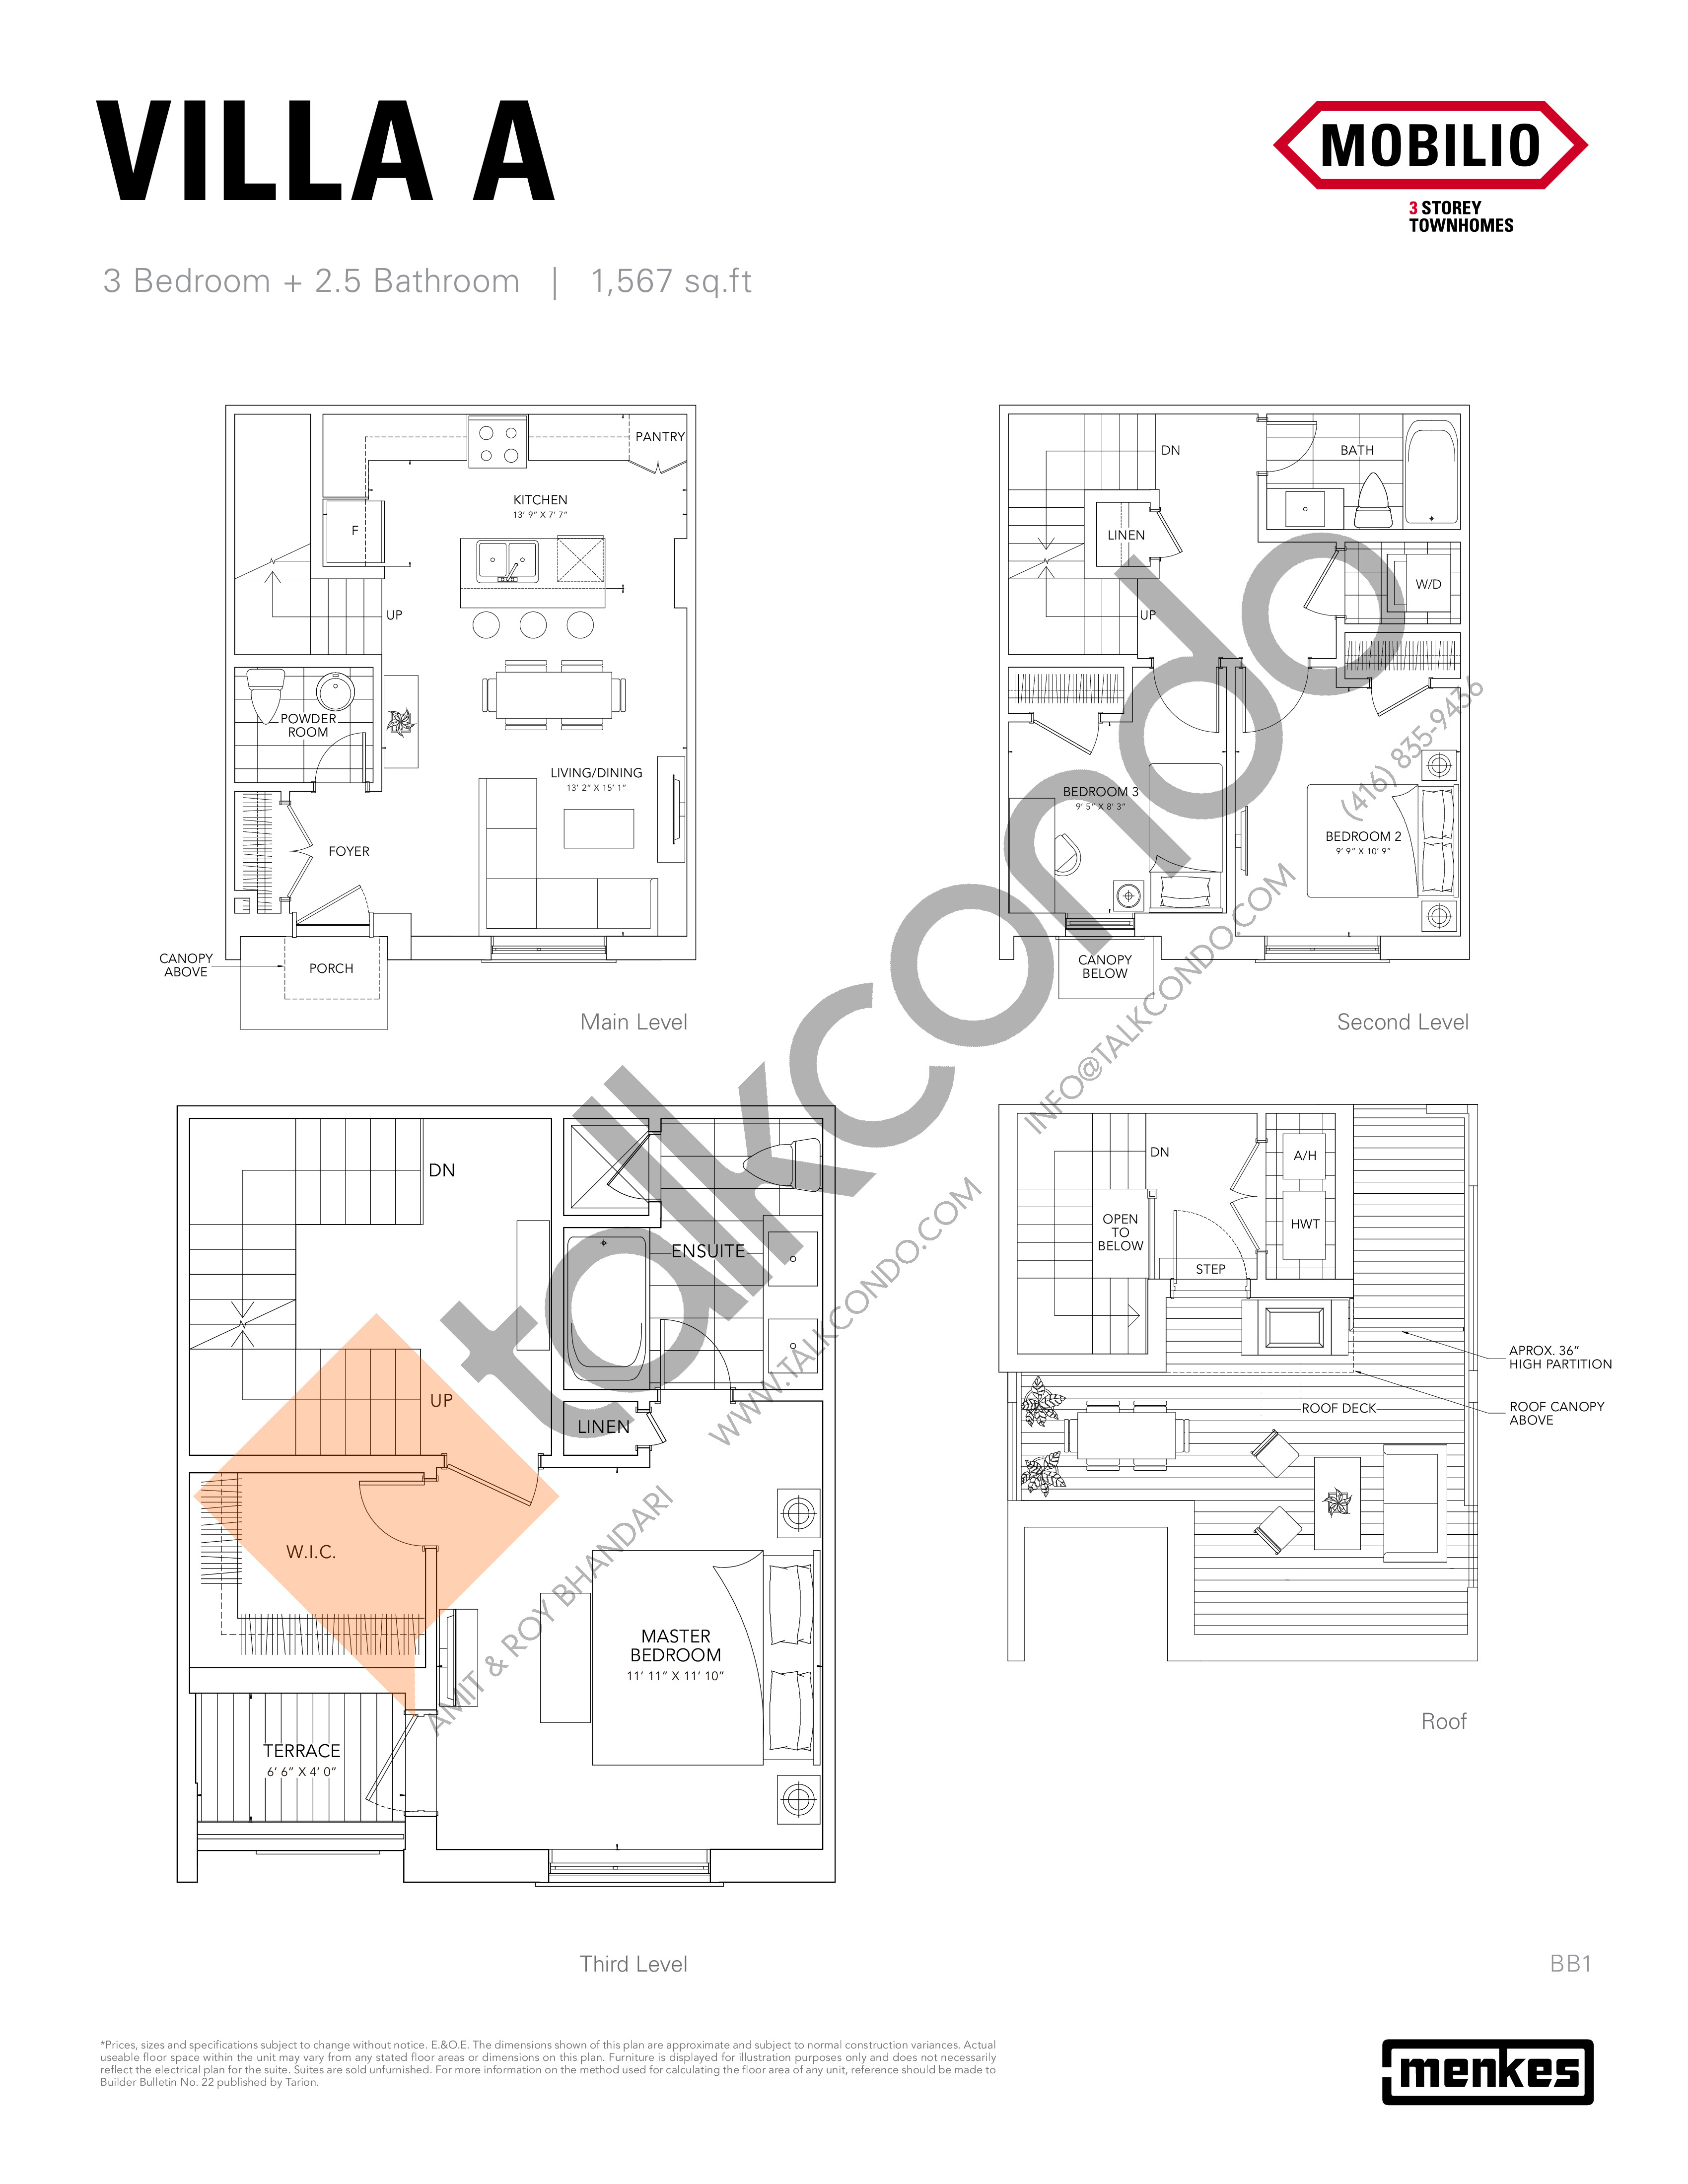 Villa A Floor Plan at Mobilio Townhomes - 1567 sq.ft